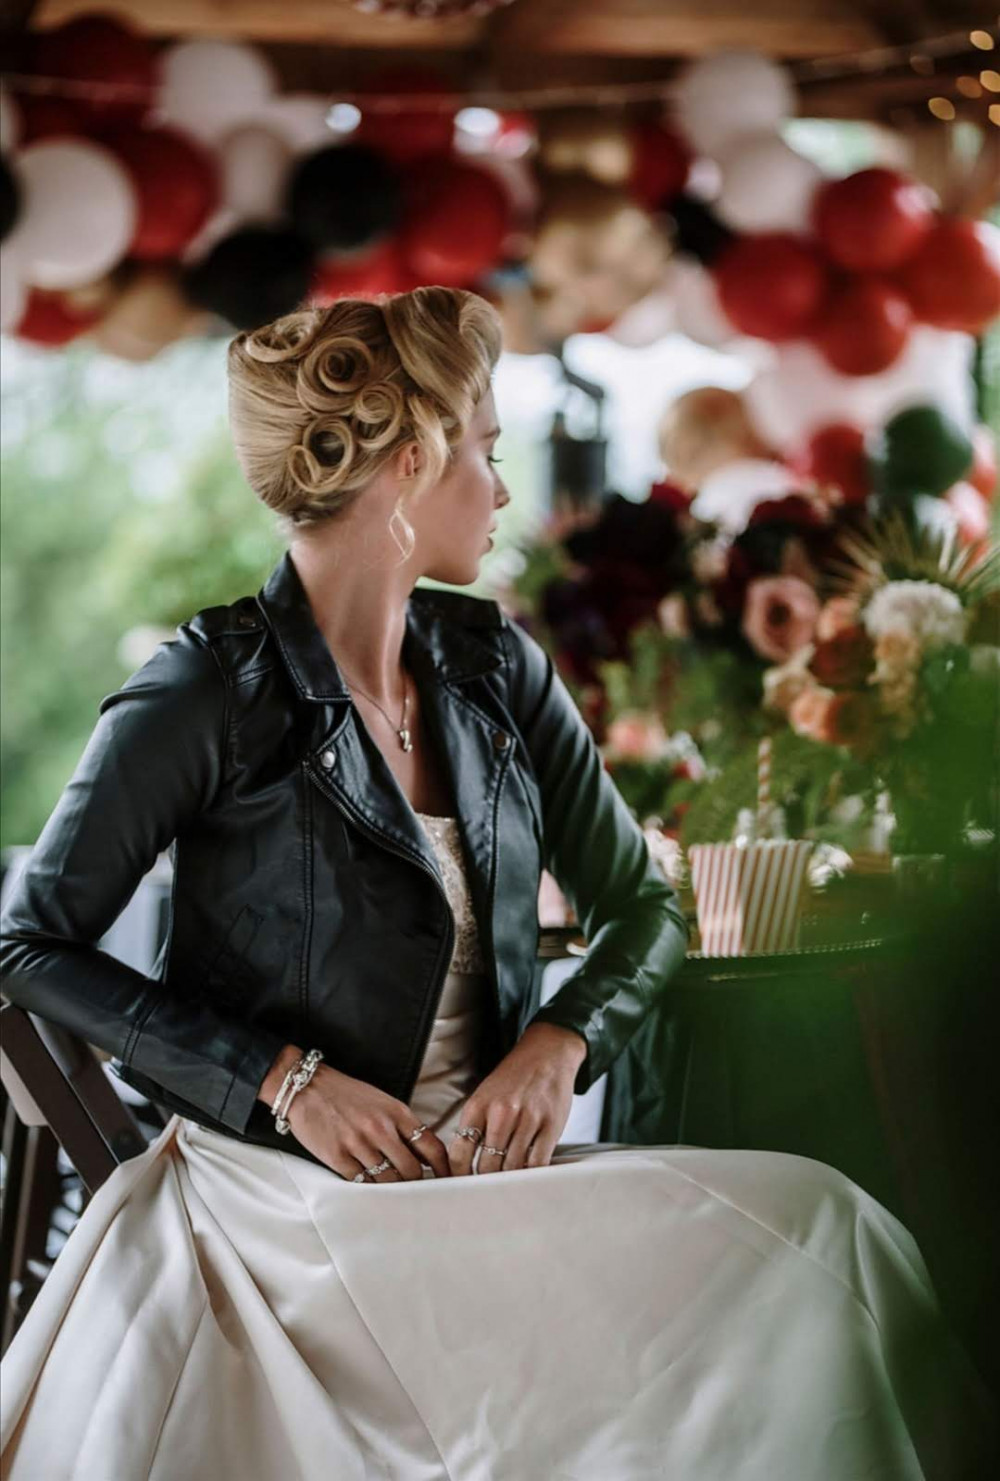 A super fun and dramatic updo for a vintage bride that will turn heads! - Make Me Bridal Artist: Hair by Hare. Photography by: Tony Pullen. #vintage #bridalhair #updo #bridalhairup #vintagehair #quirky #vintagebride